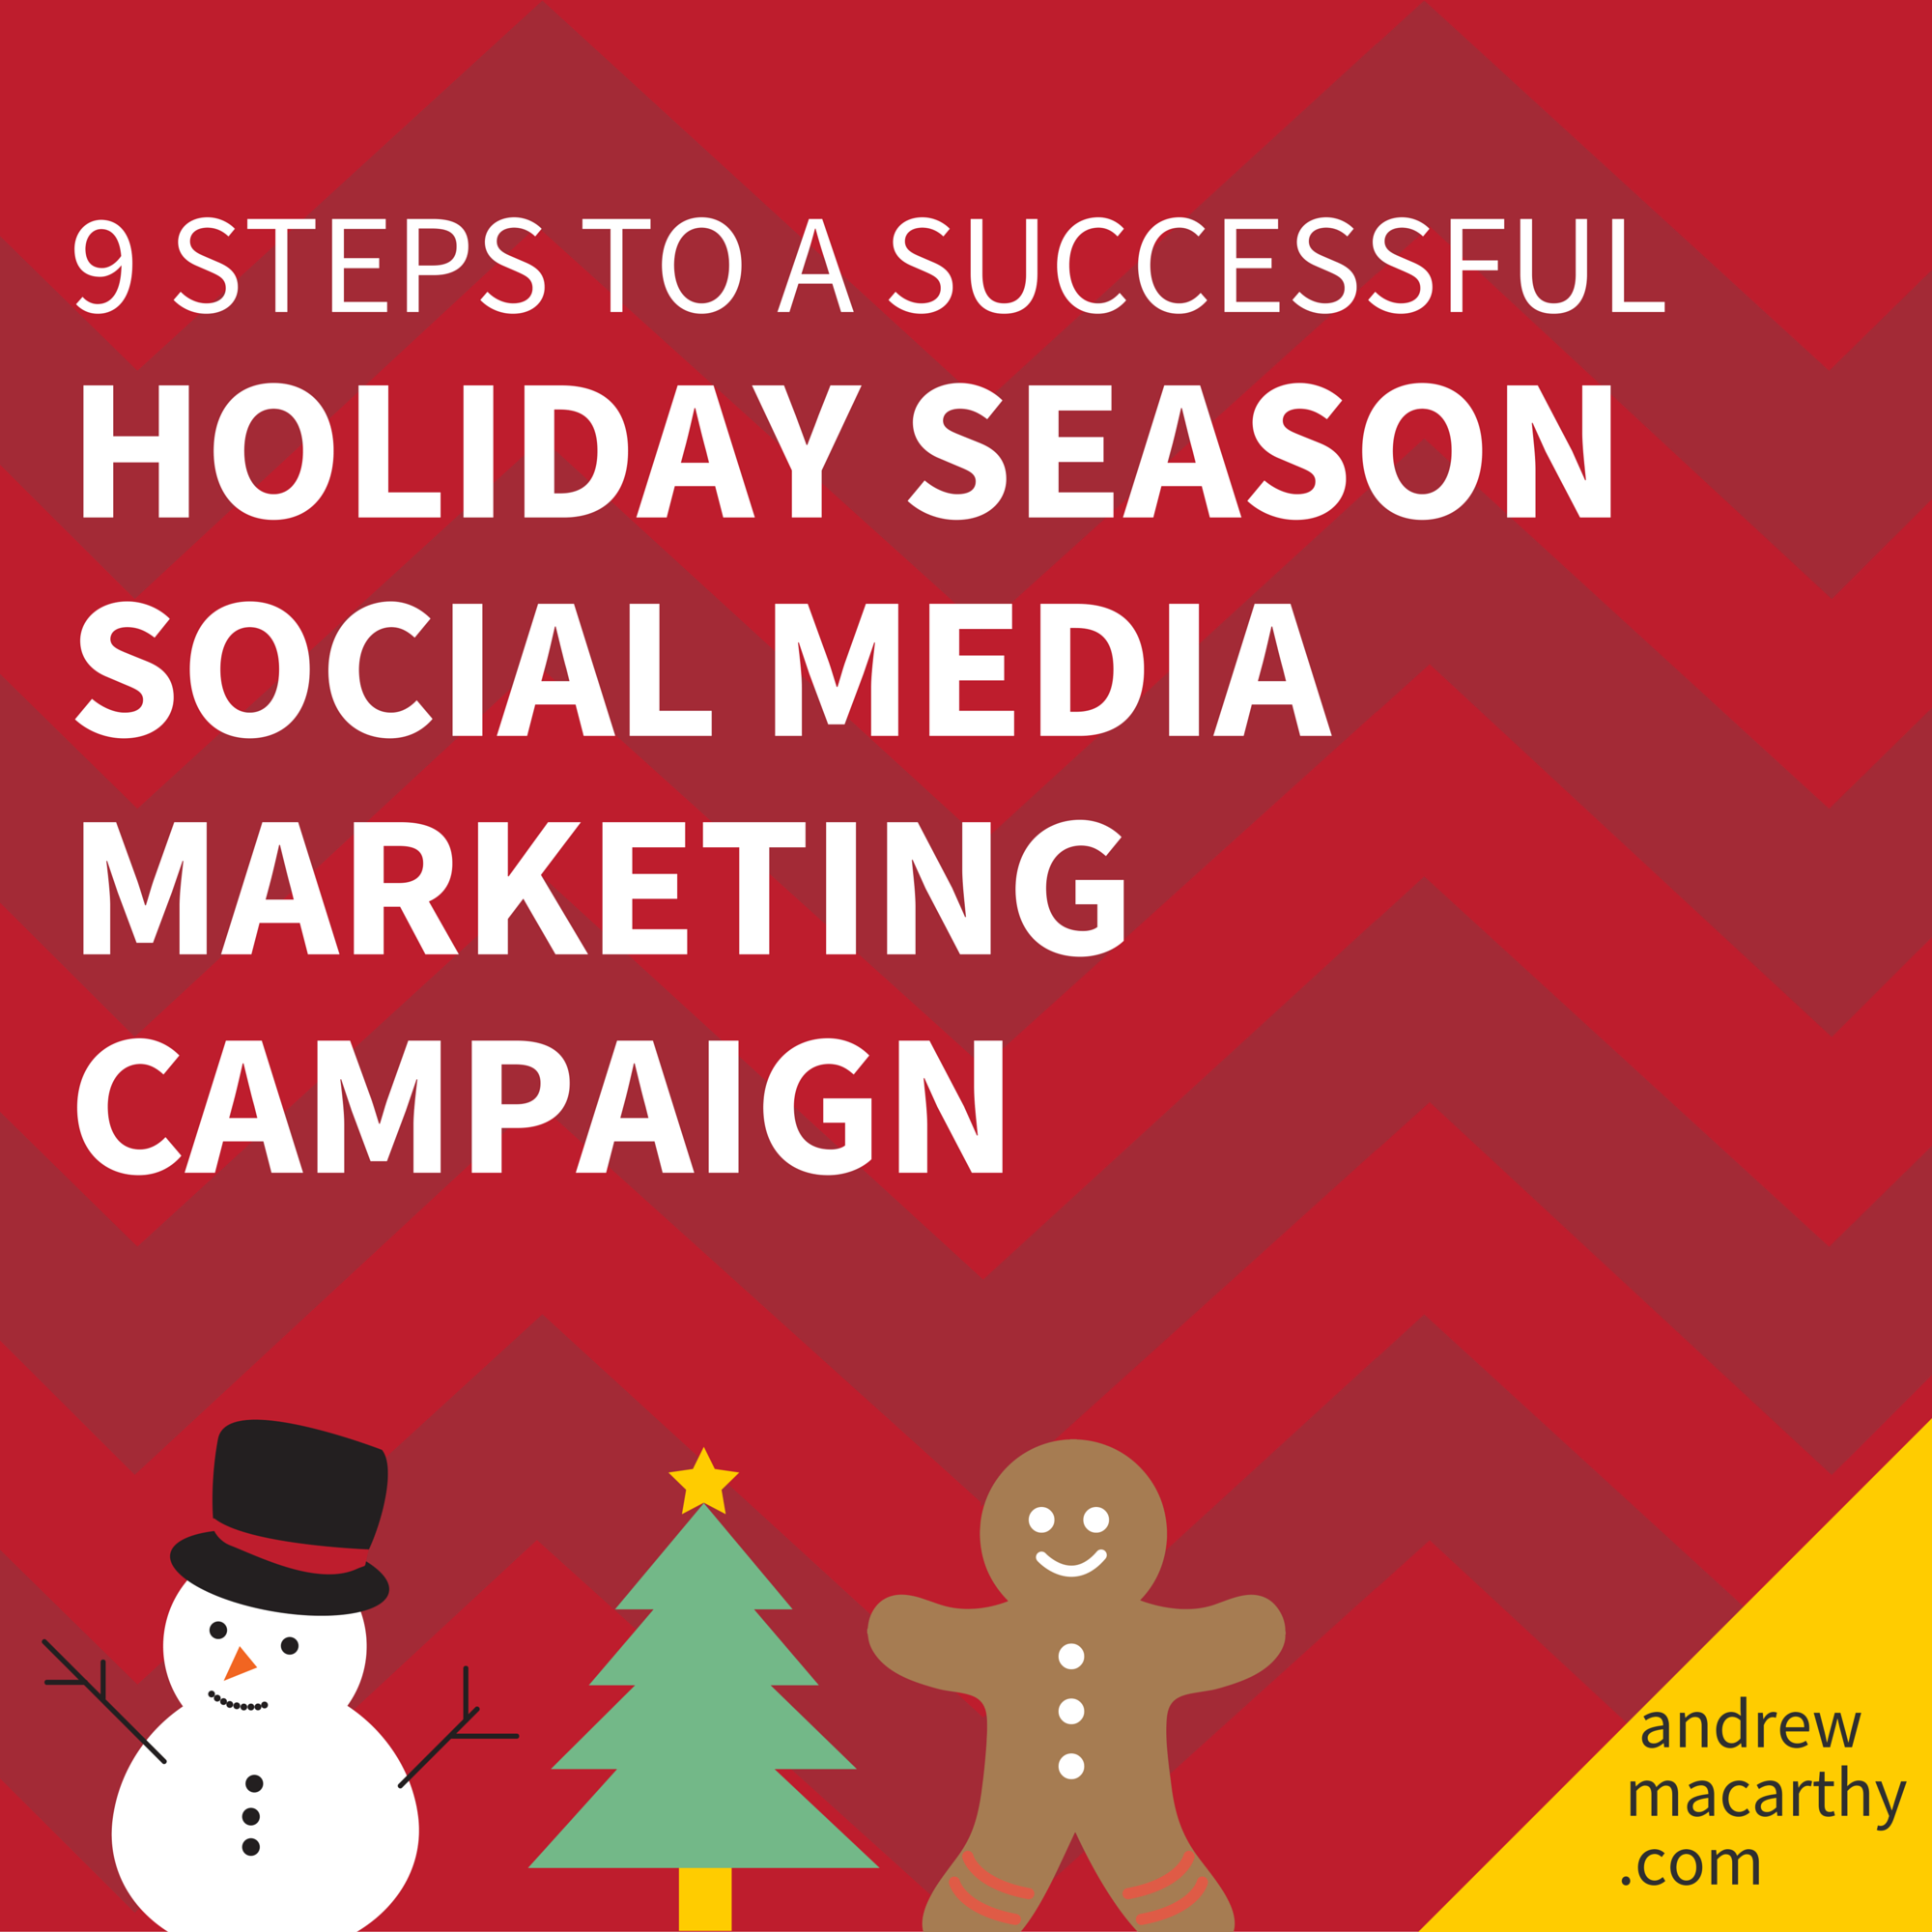 9 Steps to Have A Successful Holiday Season Social Media Campaign